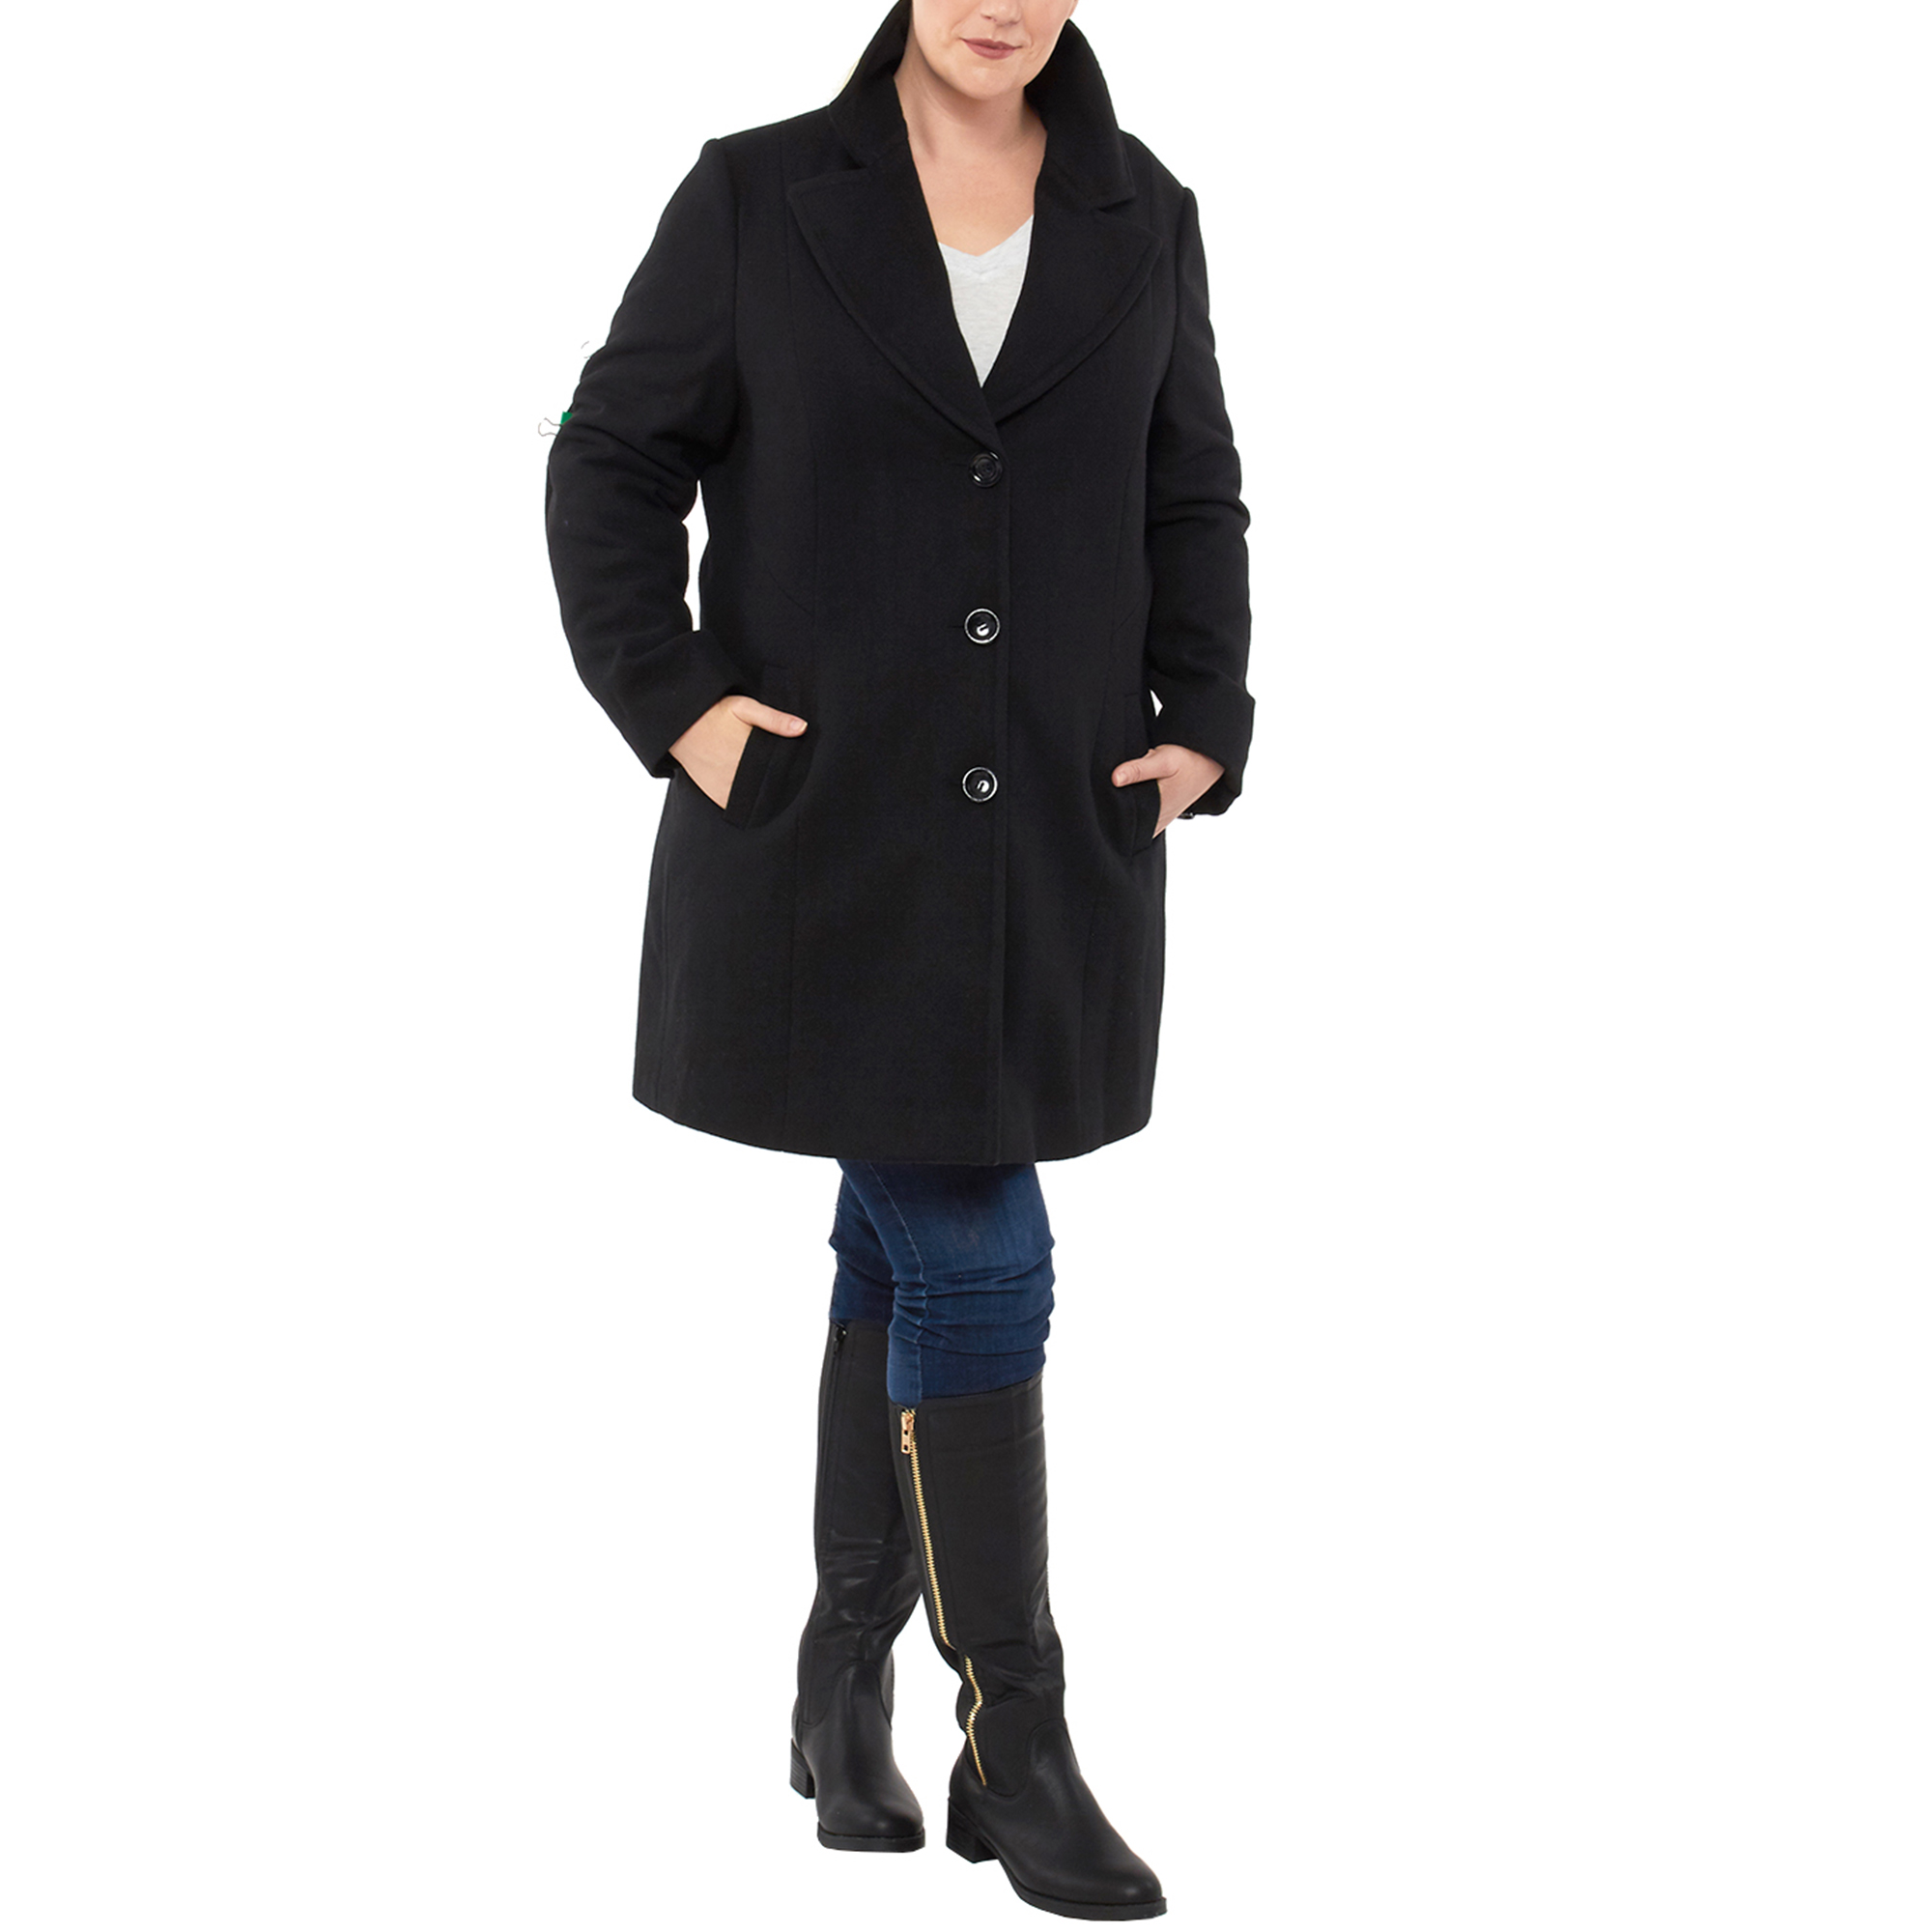 1542b7b70f1 Женская верхняя одежда Alpine Swiss Womens Plus Size Wool Overcoat Walking  Coat Blazer Pea Coat Jacket ...